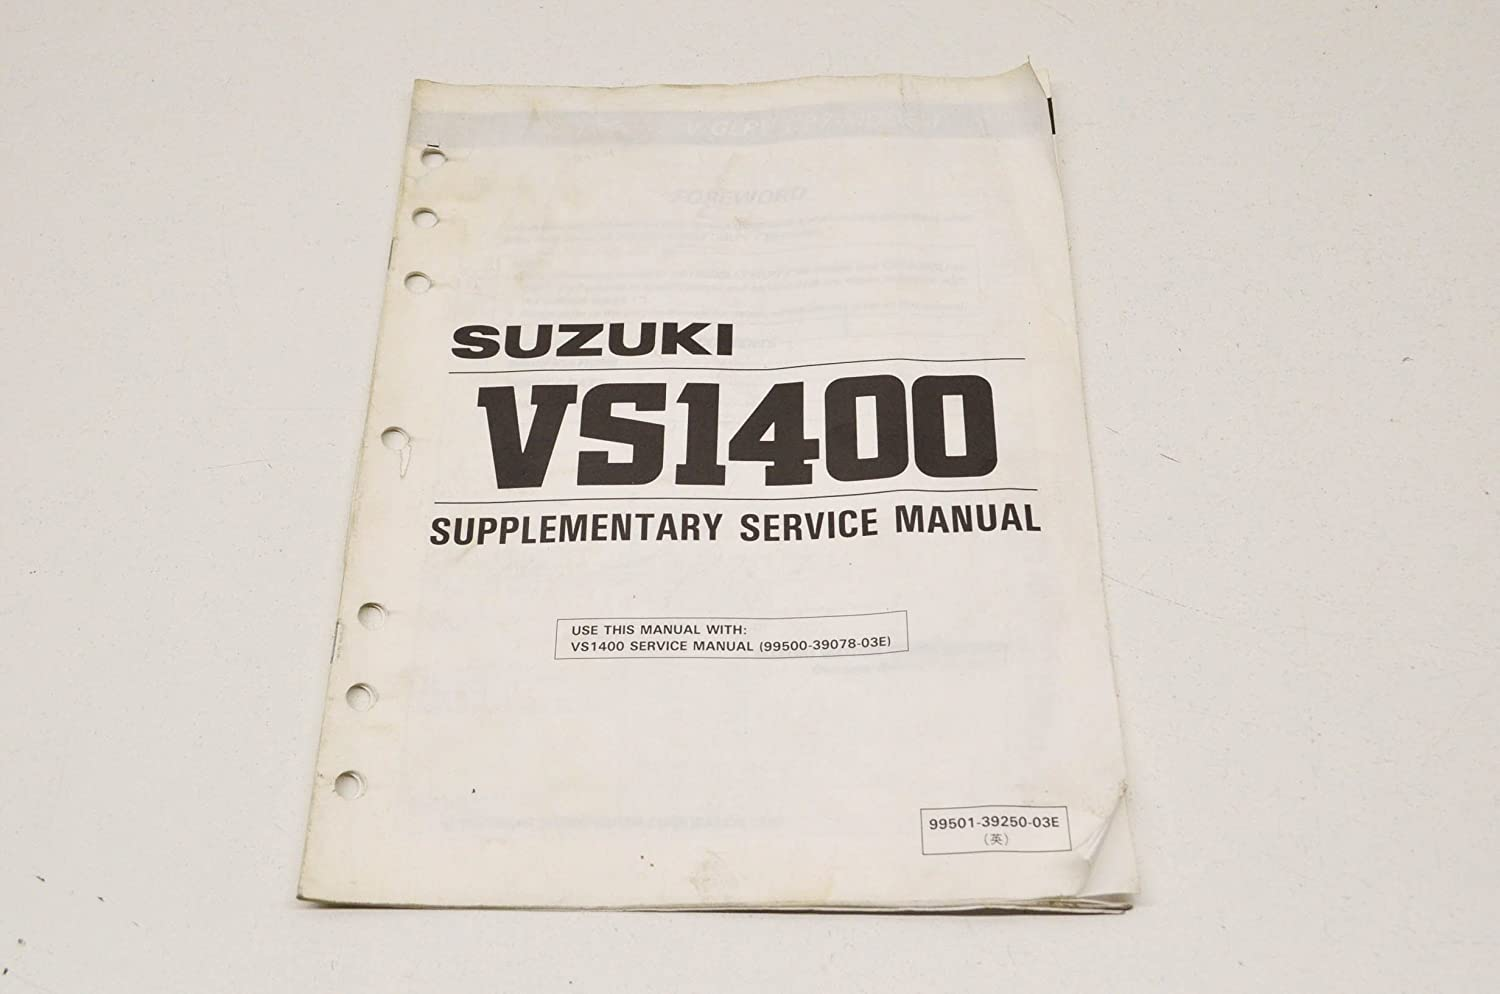 Amazon.com: Suzuki 99501-39250-03E Supplementary Service Manual VS1400  VS1400. QTY 1: Automotive